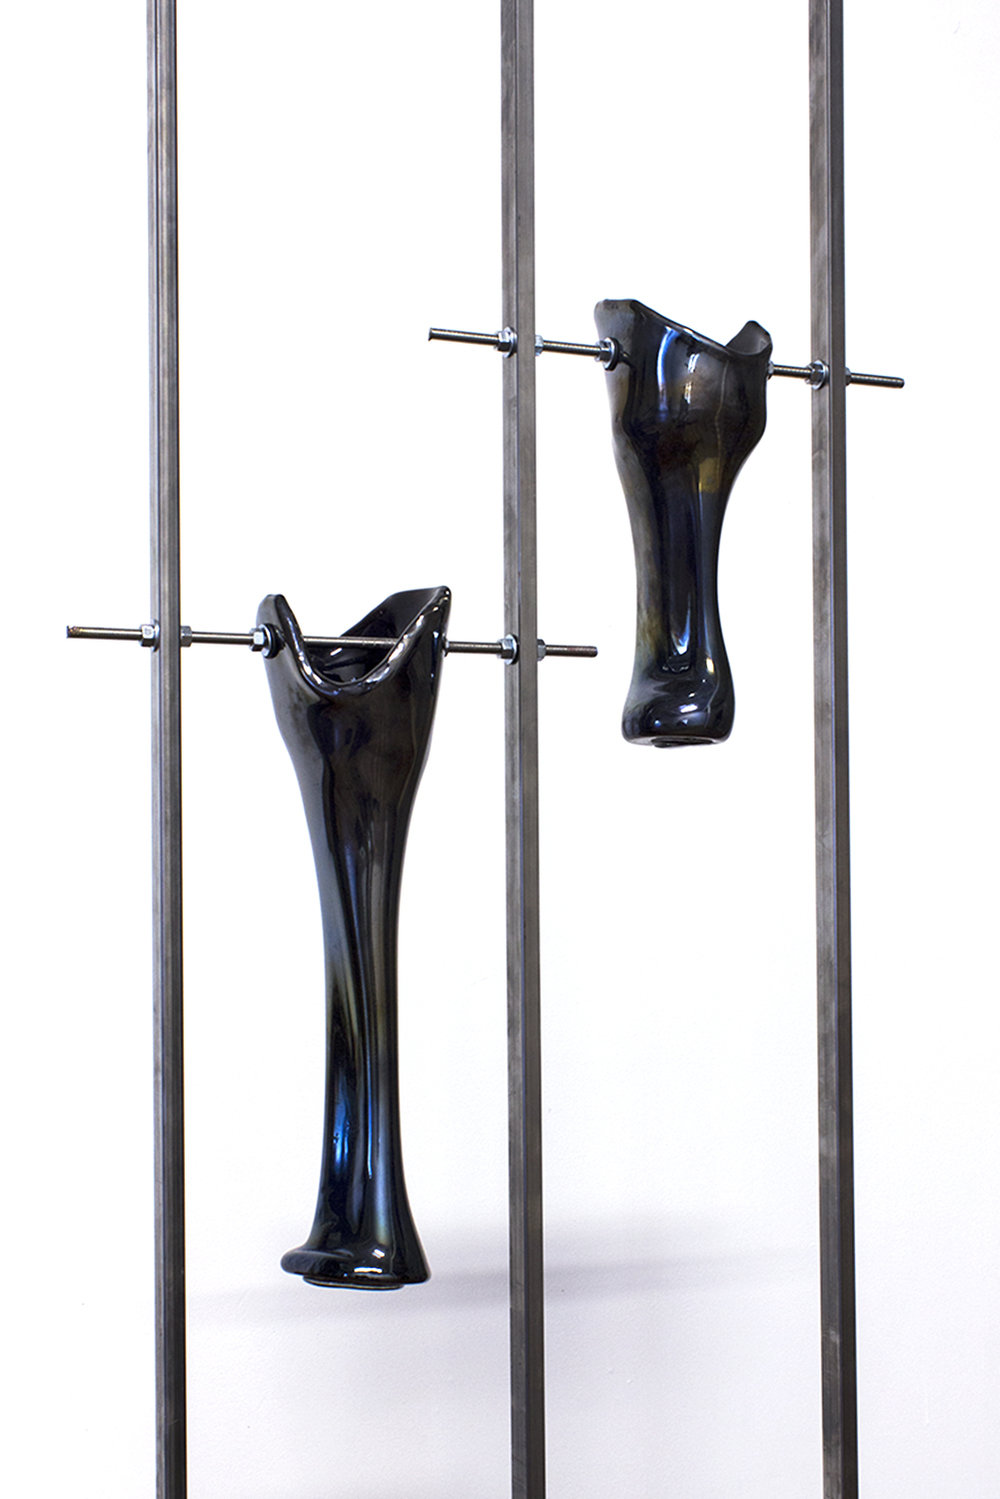 LEGS I-II (blown glass, black pigment, welded steel), 2018